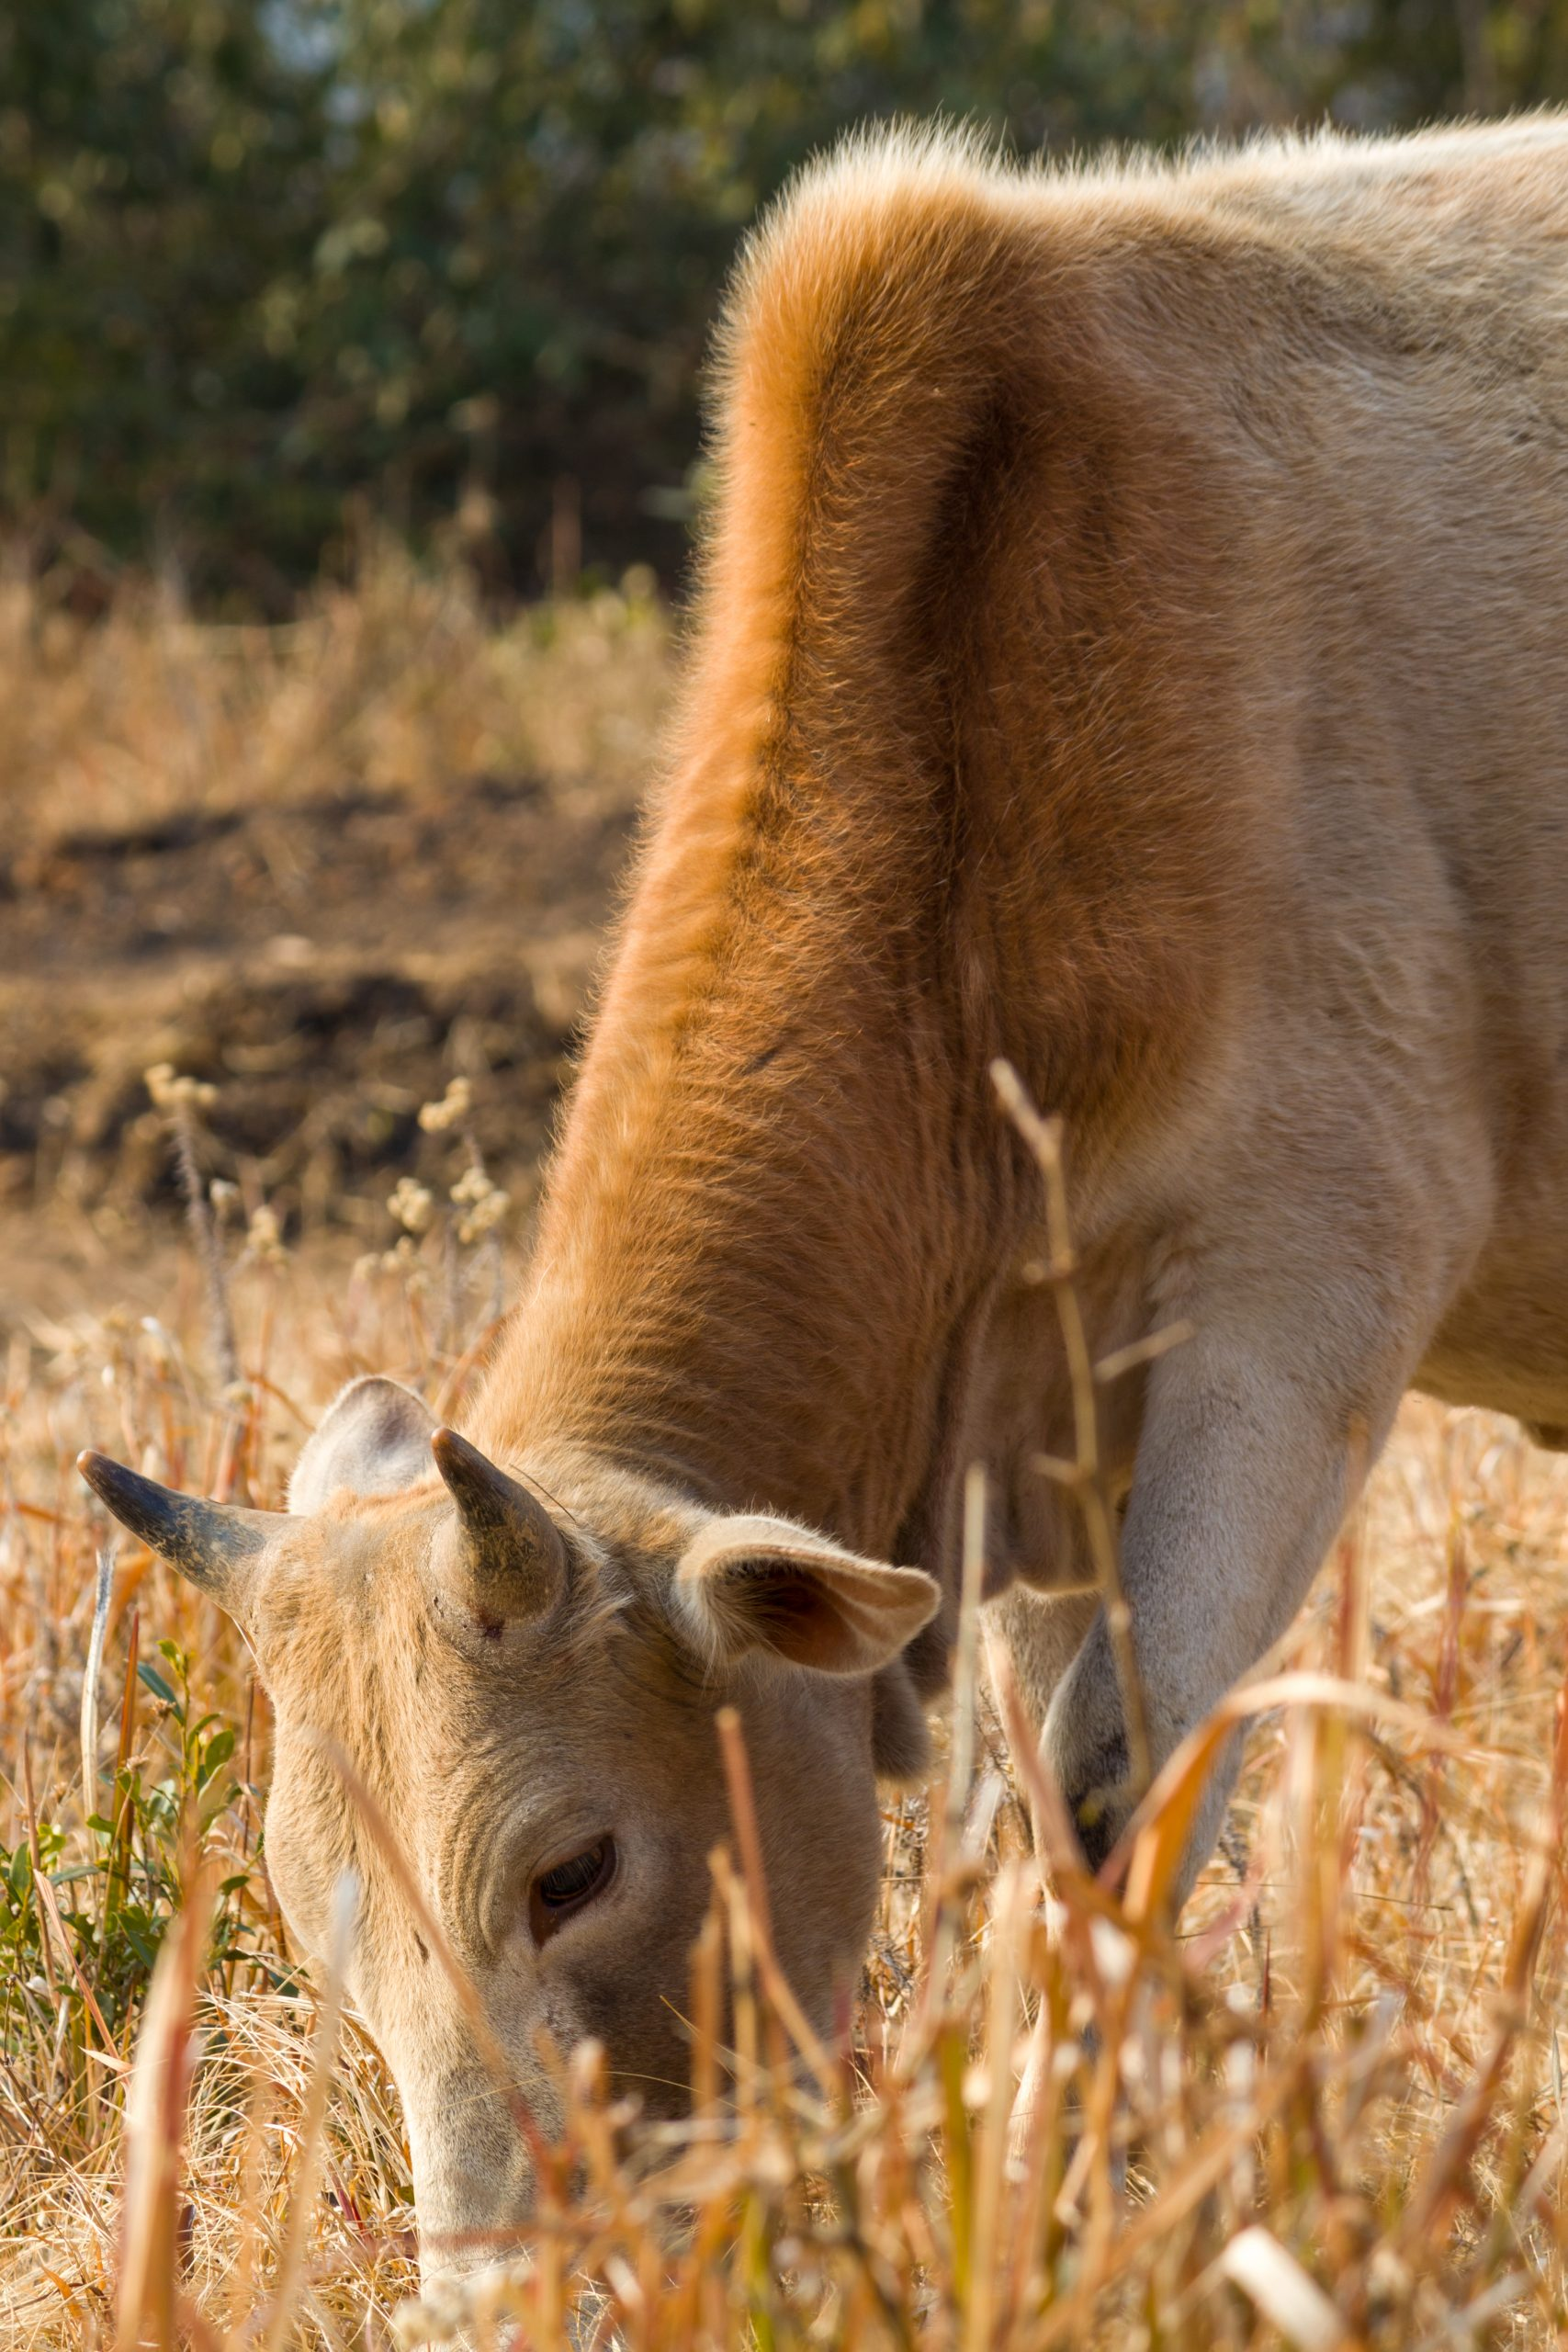 A grazing cow